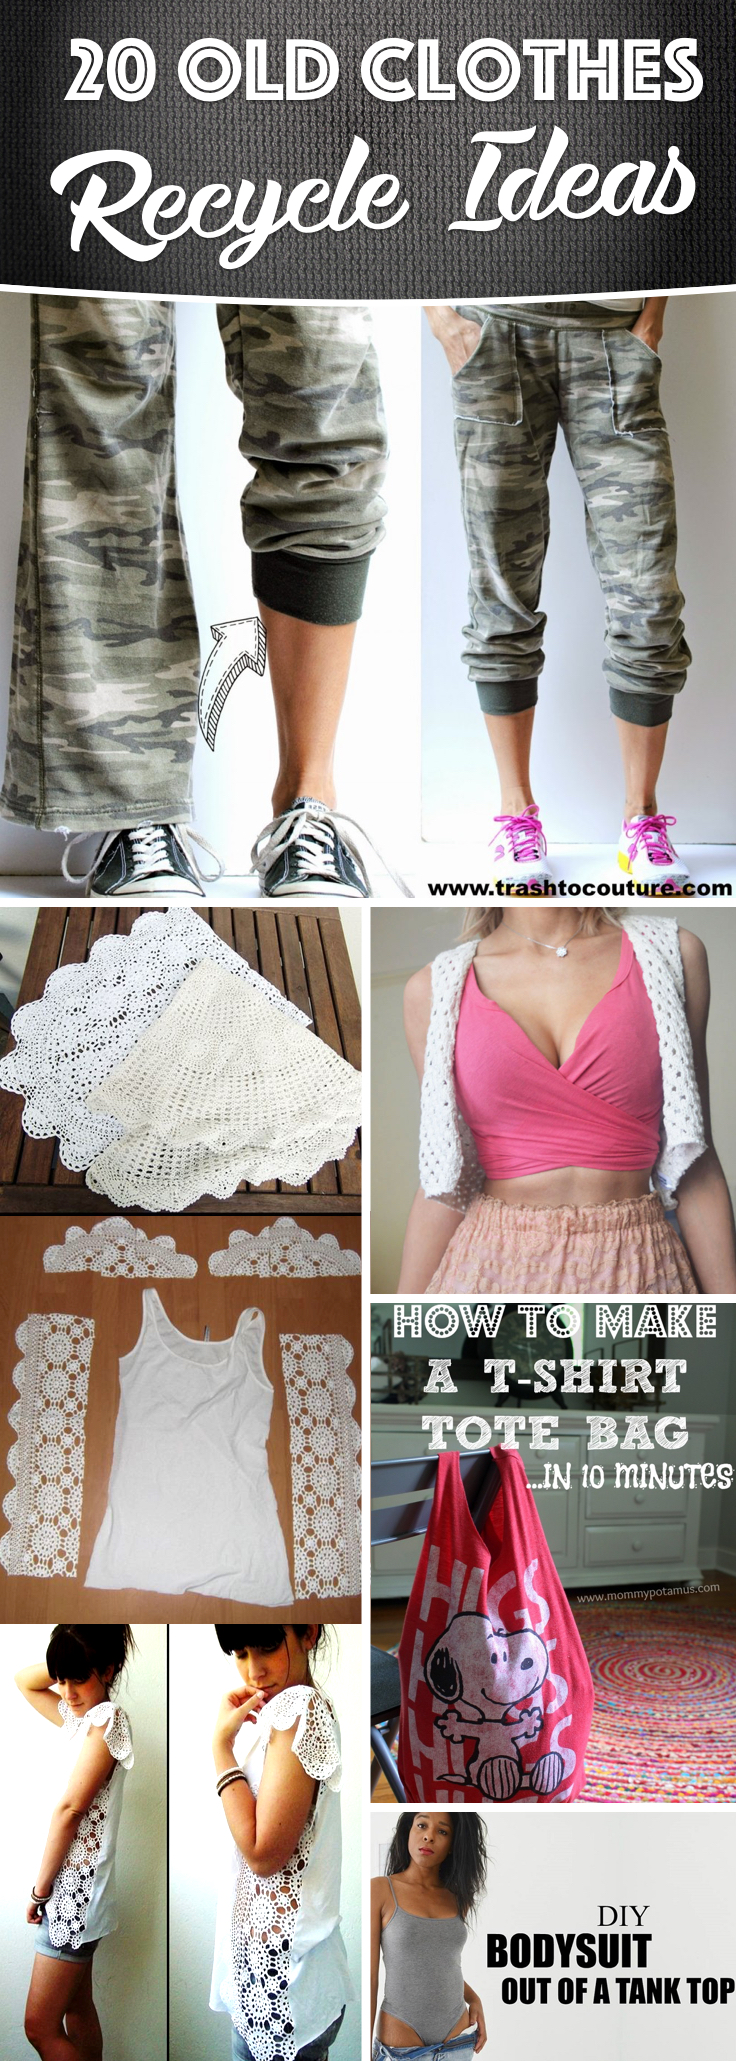 Find and save ideas about Recycle old clothes on Pinterest. | See more ideas about Recycled old clothes, DIY clothes old t shirts and Reuse old clothes.